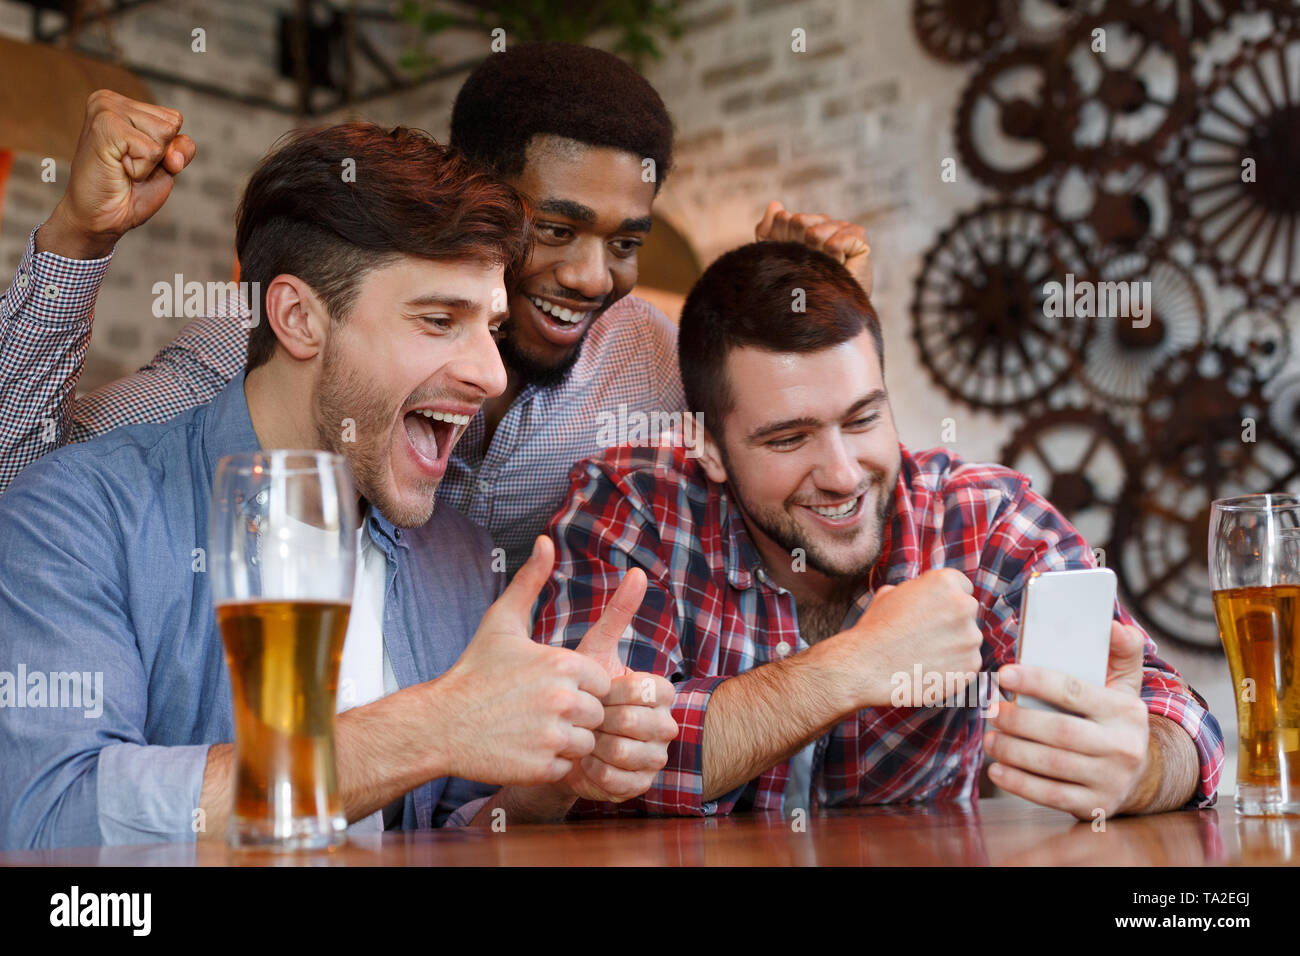 Male Friends Having Video-Call On Smartphone In Bar - Stock Image